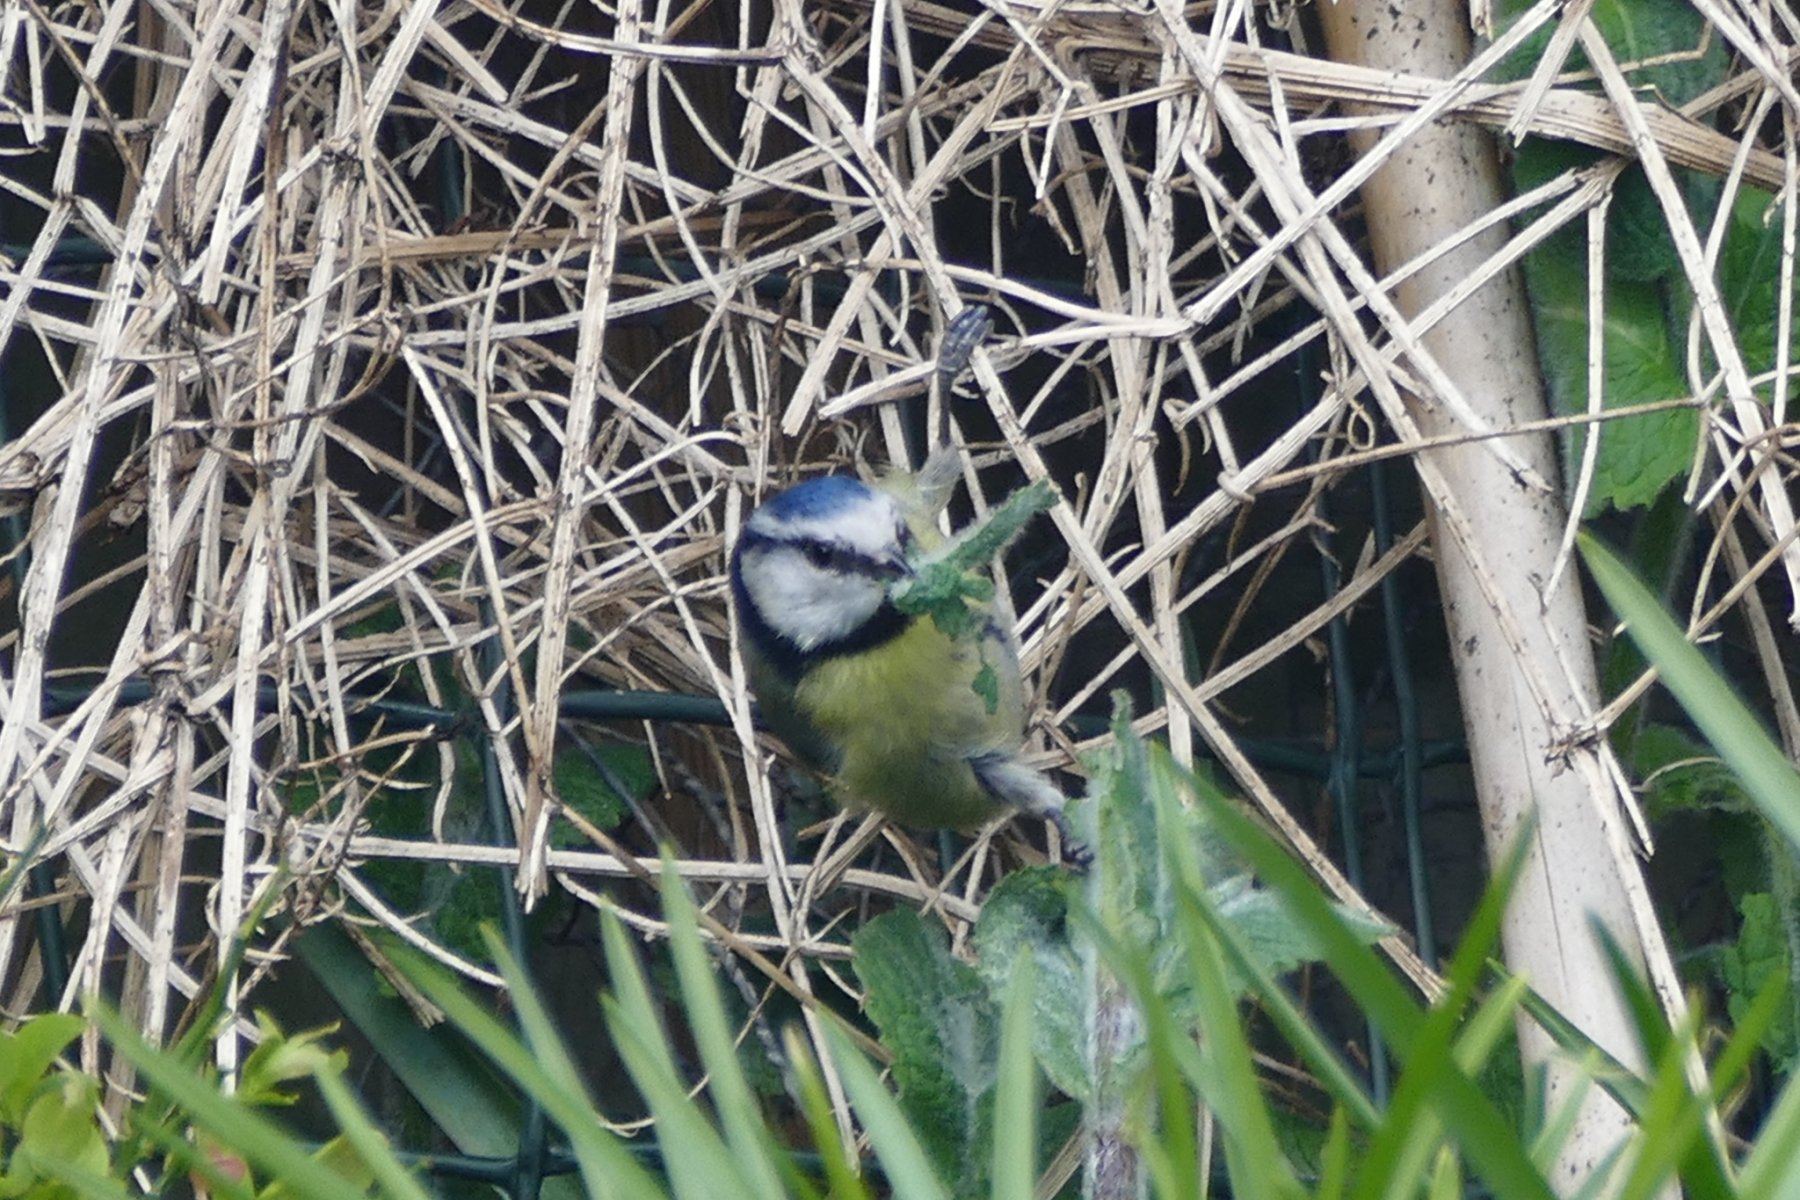 Blue Tit behavour